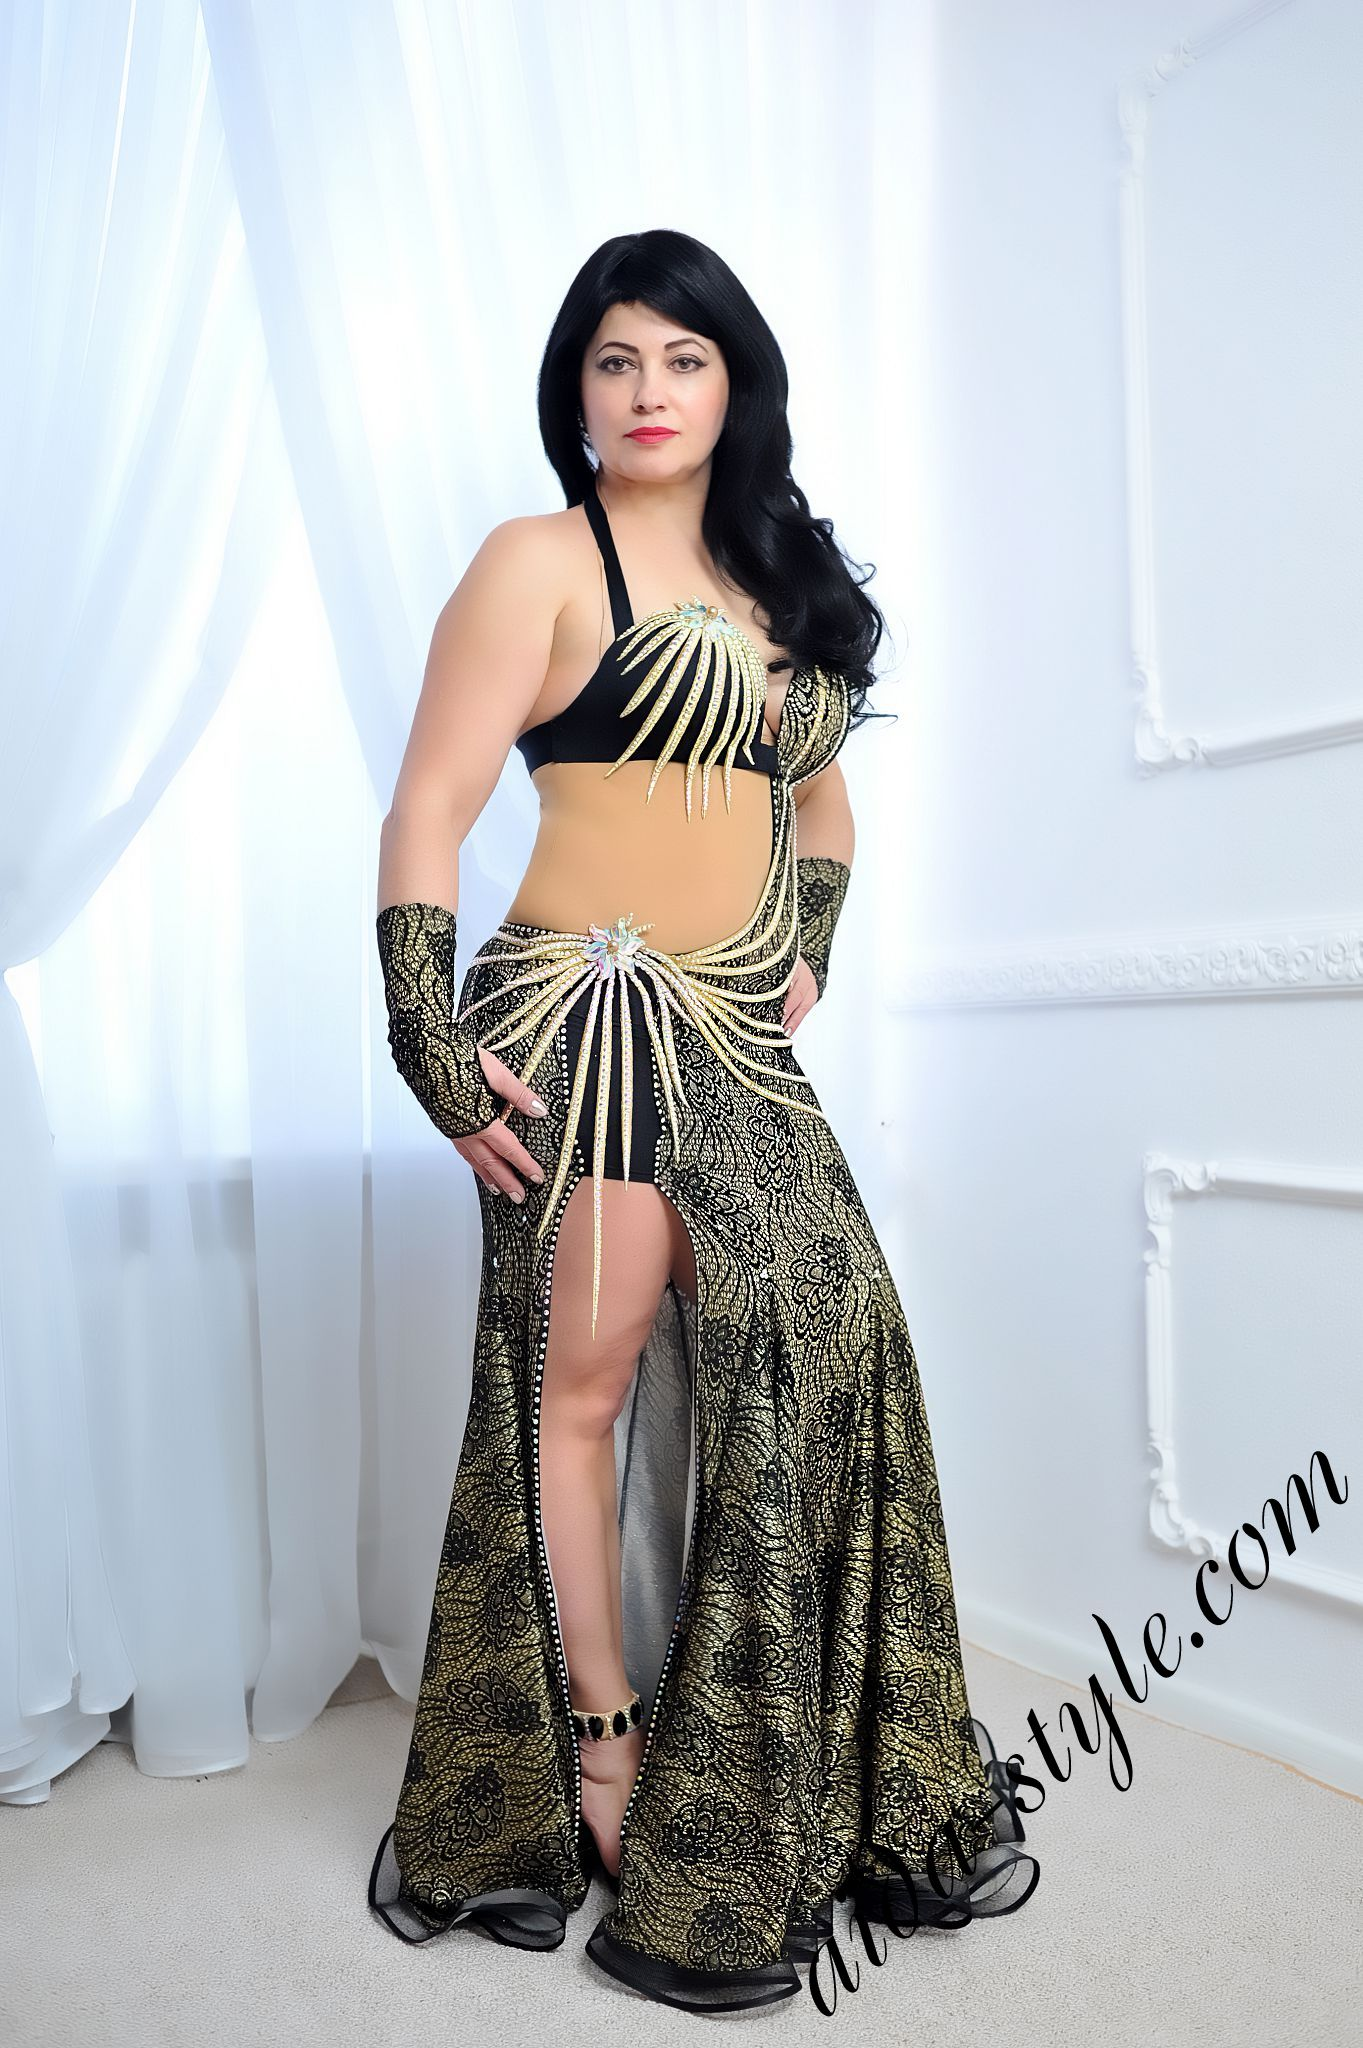 fe55fe6a795d greyish and black belly dance dress by Aida Style with exclusive golden  stripes for decoration and